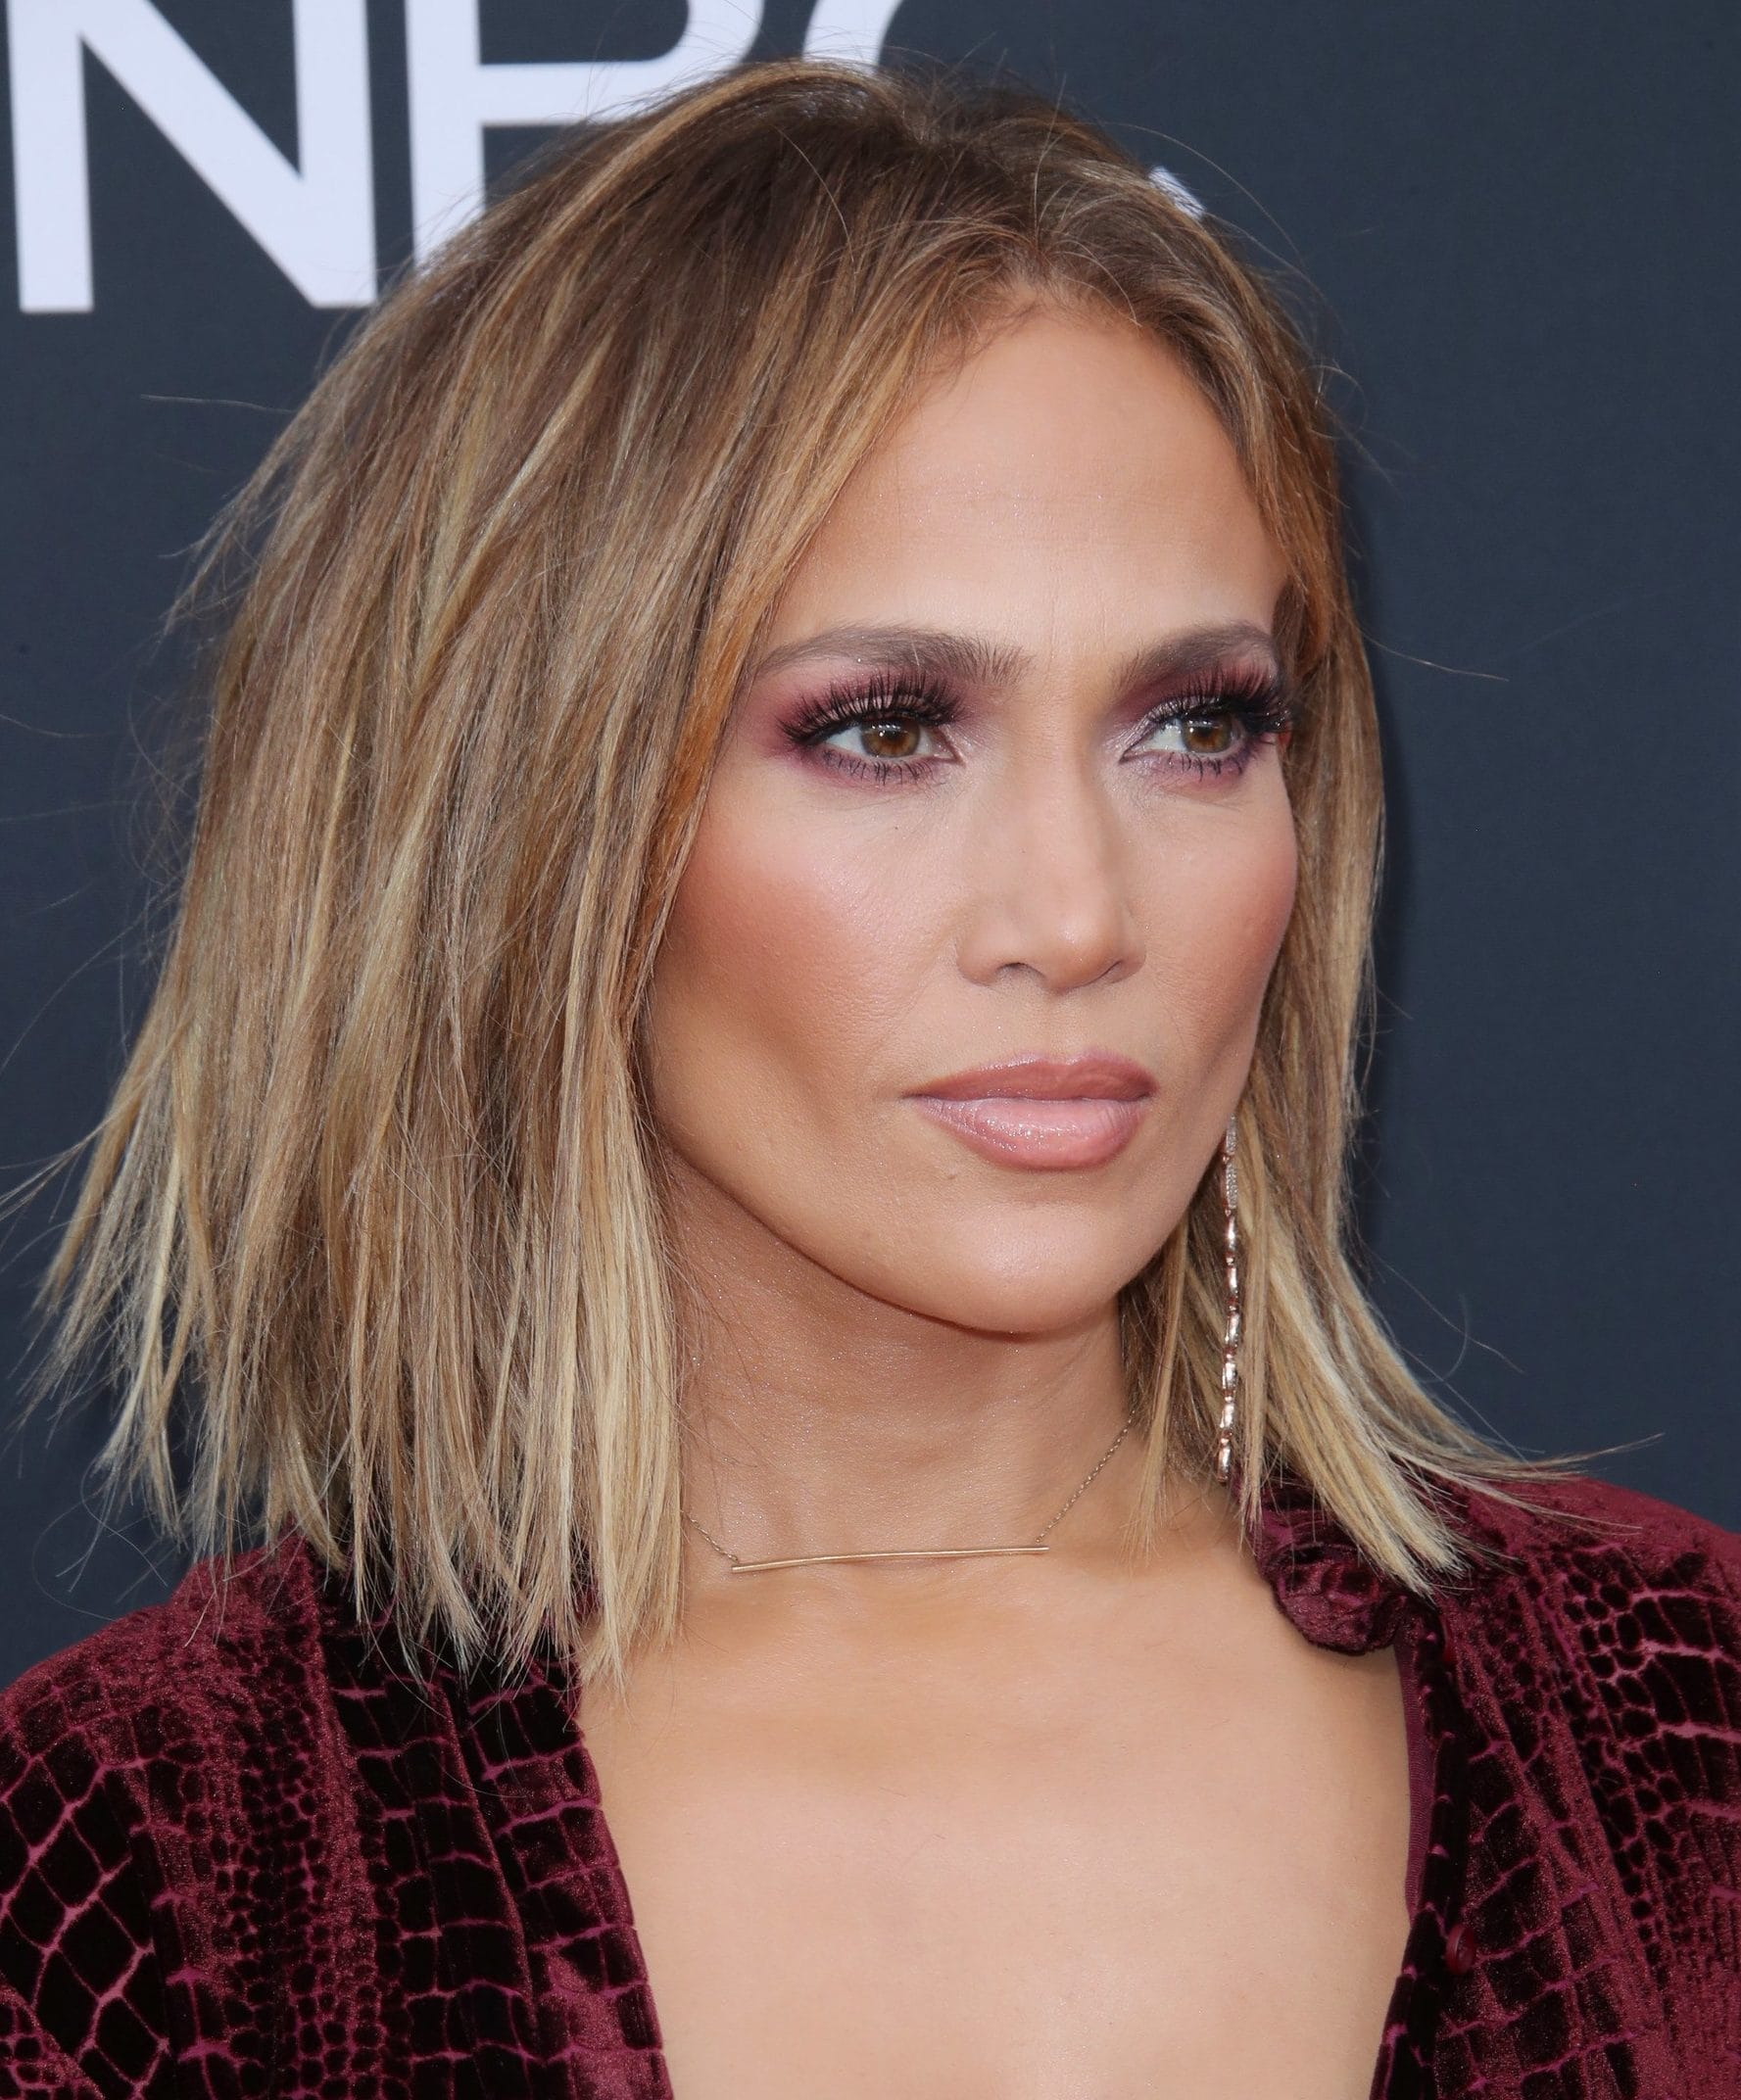 Brown hair with blonde highlights: Jennifer Lopez with a brunette and blonde highlighted bob, wearing a red outfit